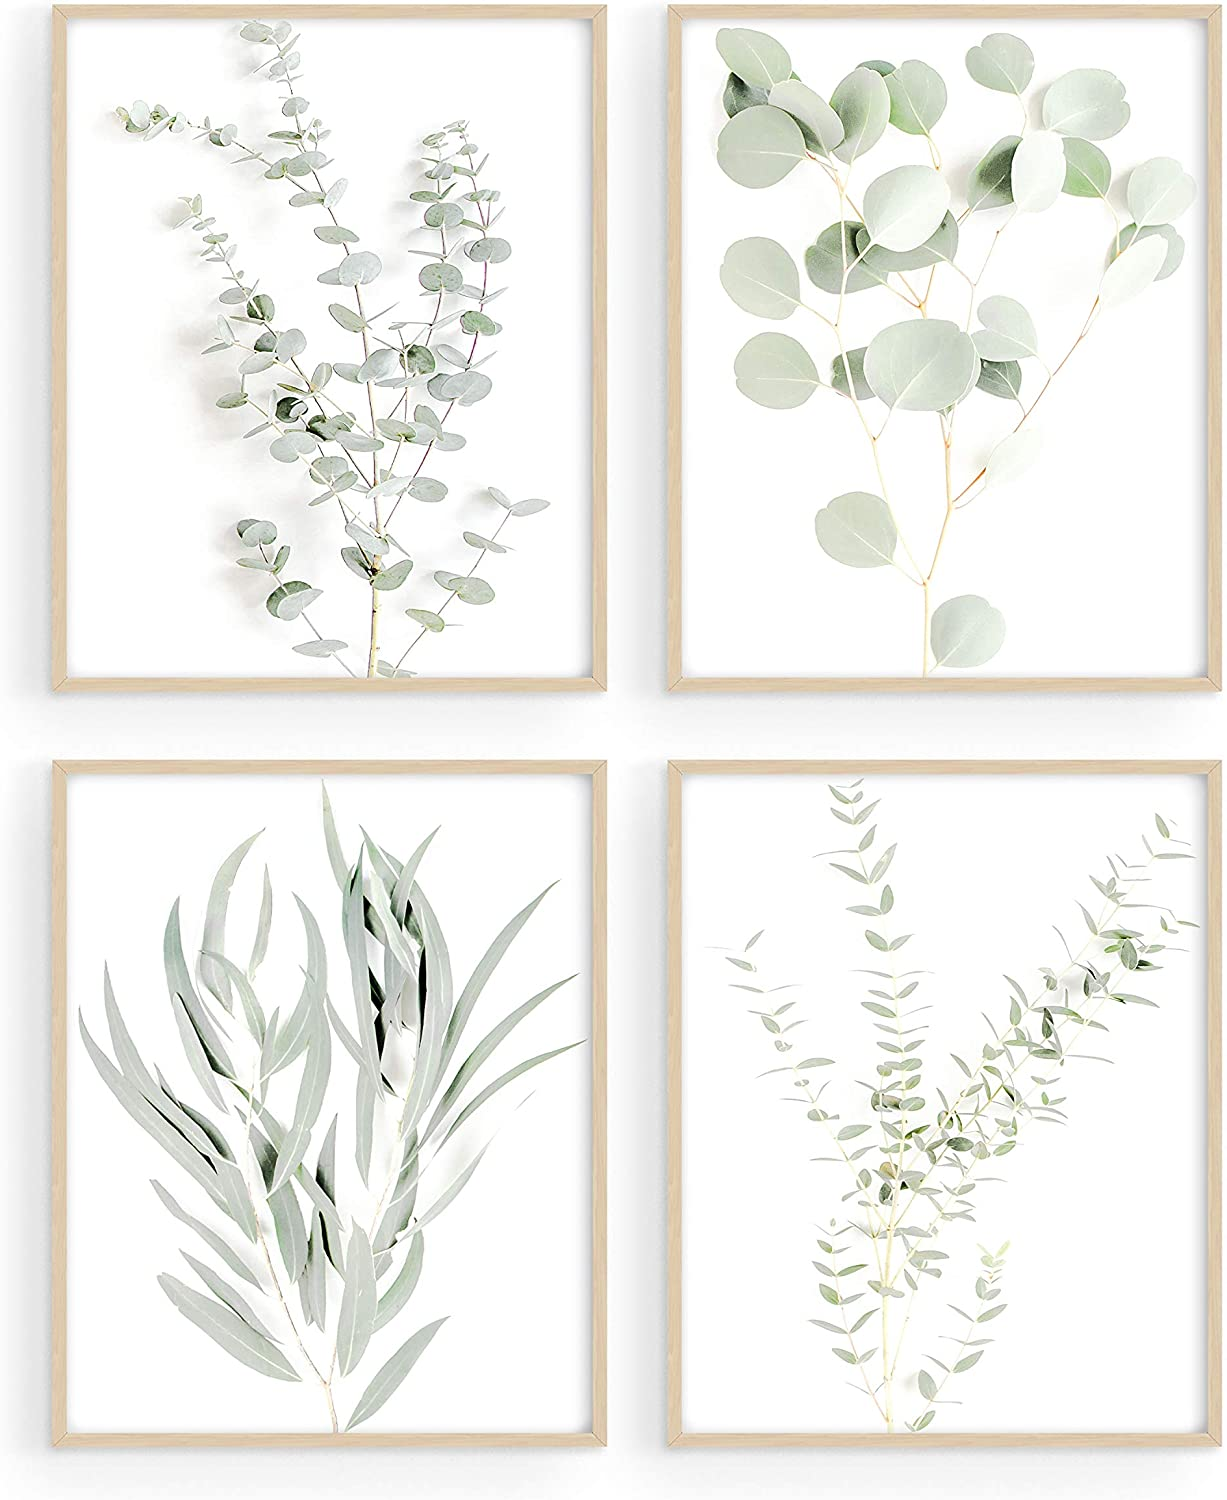 "HAUS AND HUES Botanical Plant Wall Art Prints - Set of 4 Plant Wall Decor Prints Floral Kitchen Flower Leaves Wall Art Boho Leaf Eucalyptus (11""x14"", UNFRAMED)"